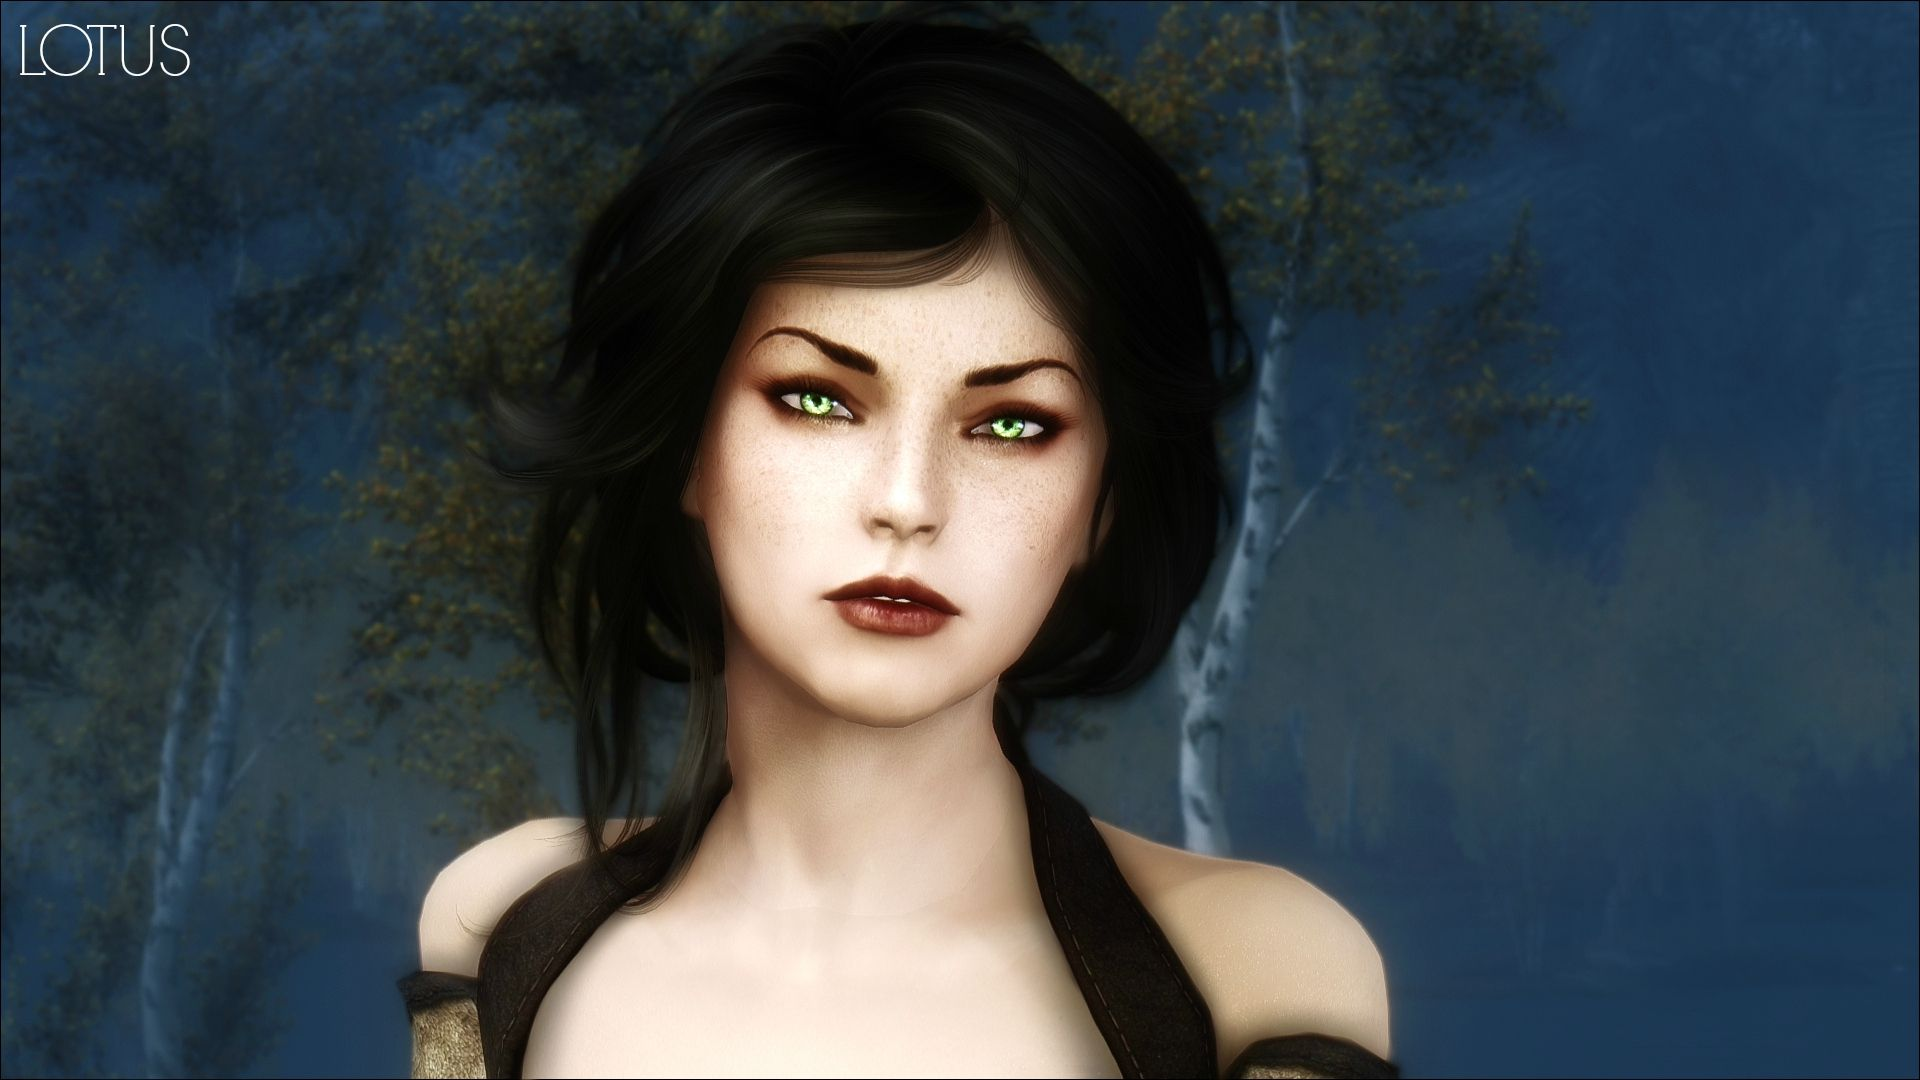 Ks Hairdos Renewal Skyrim Nexus Mods Skyrim Mod Hair